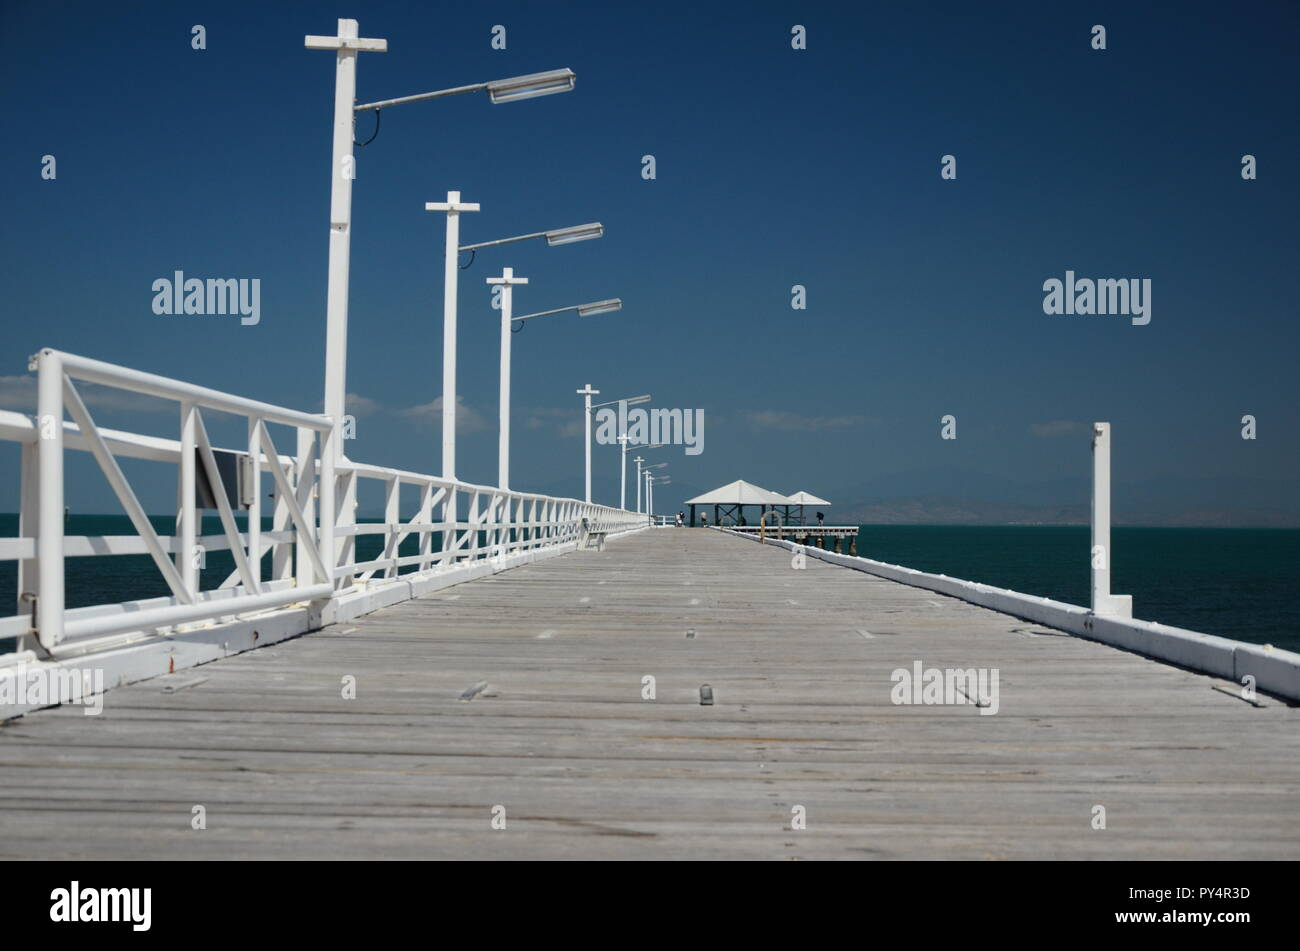 Picnic bay Jetty, Magnetic island - Stock Image